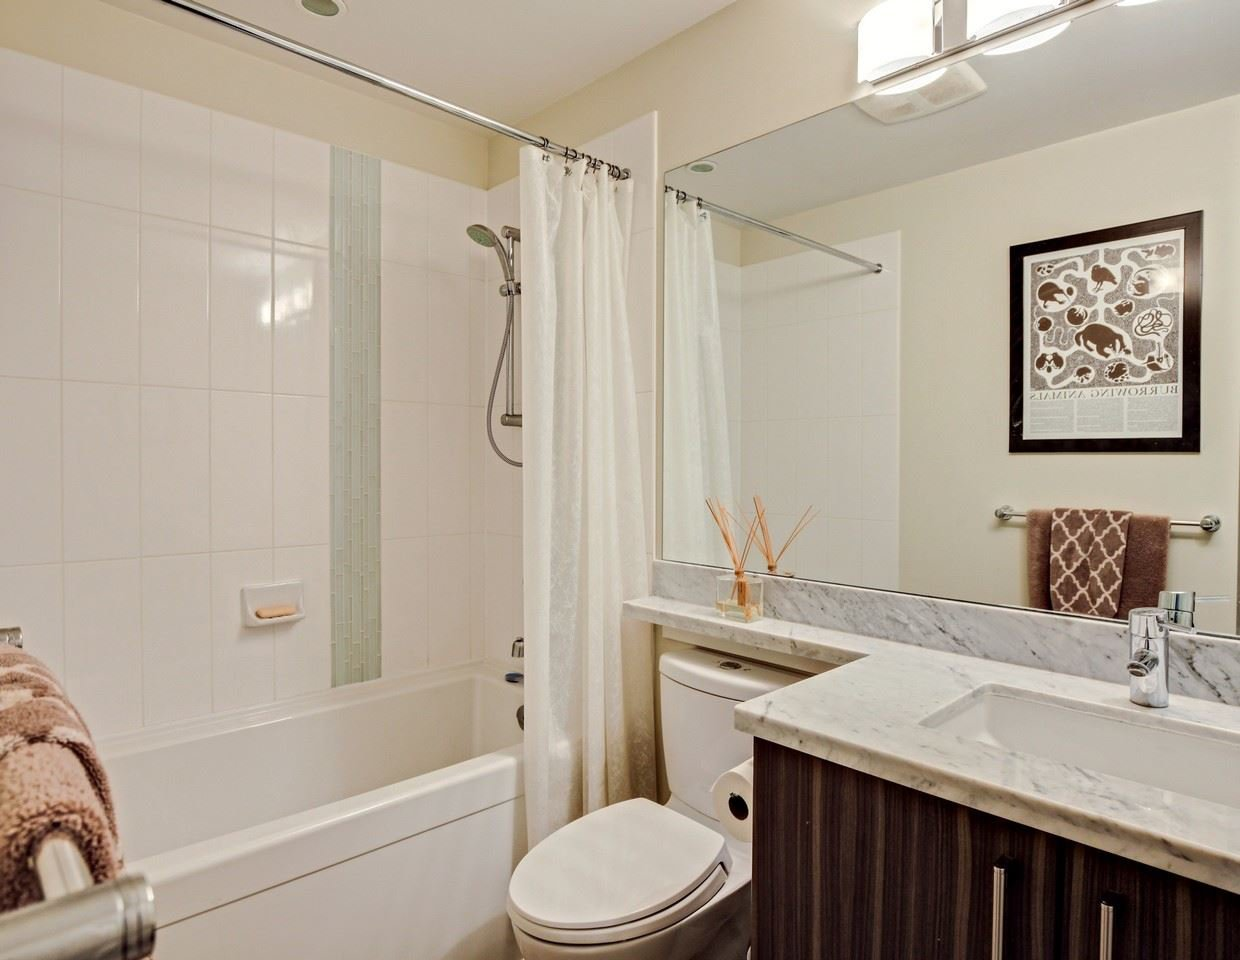 Photo 10: Photos: 319 119 W 22ND STREET in North Vancouver: Central Lonsdale Condo for sale : MLS®# R2047201